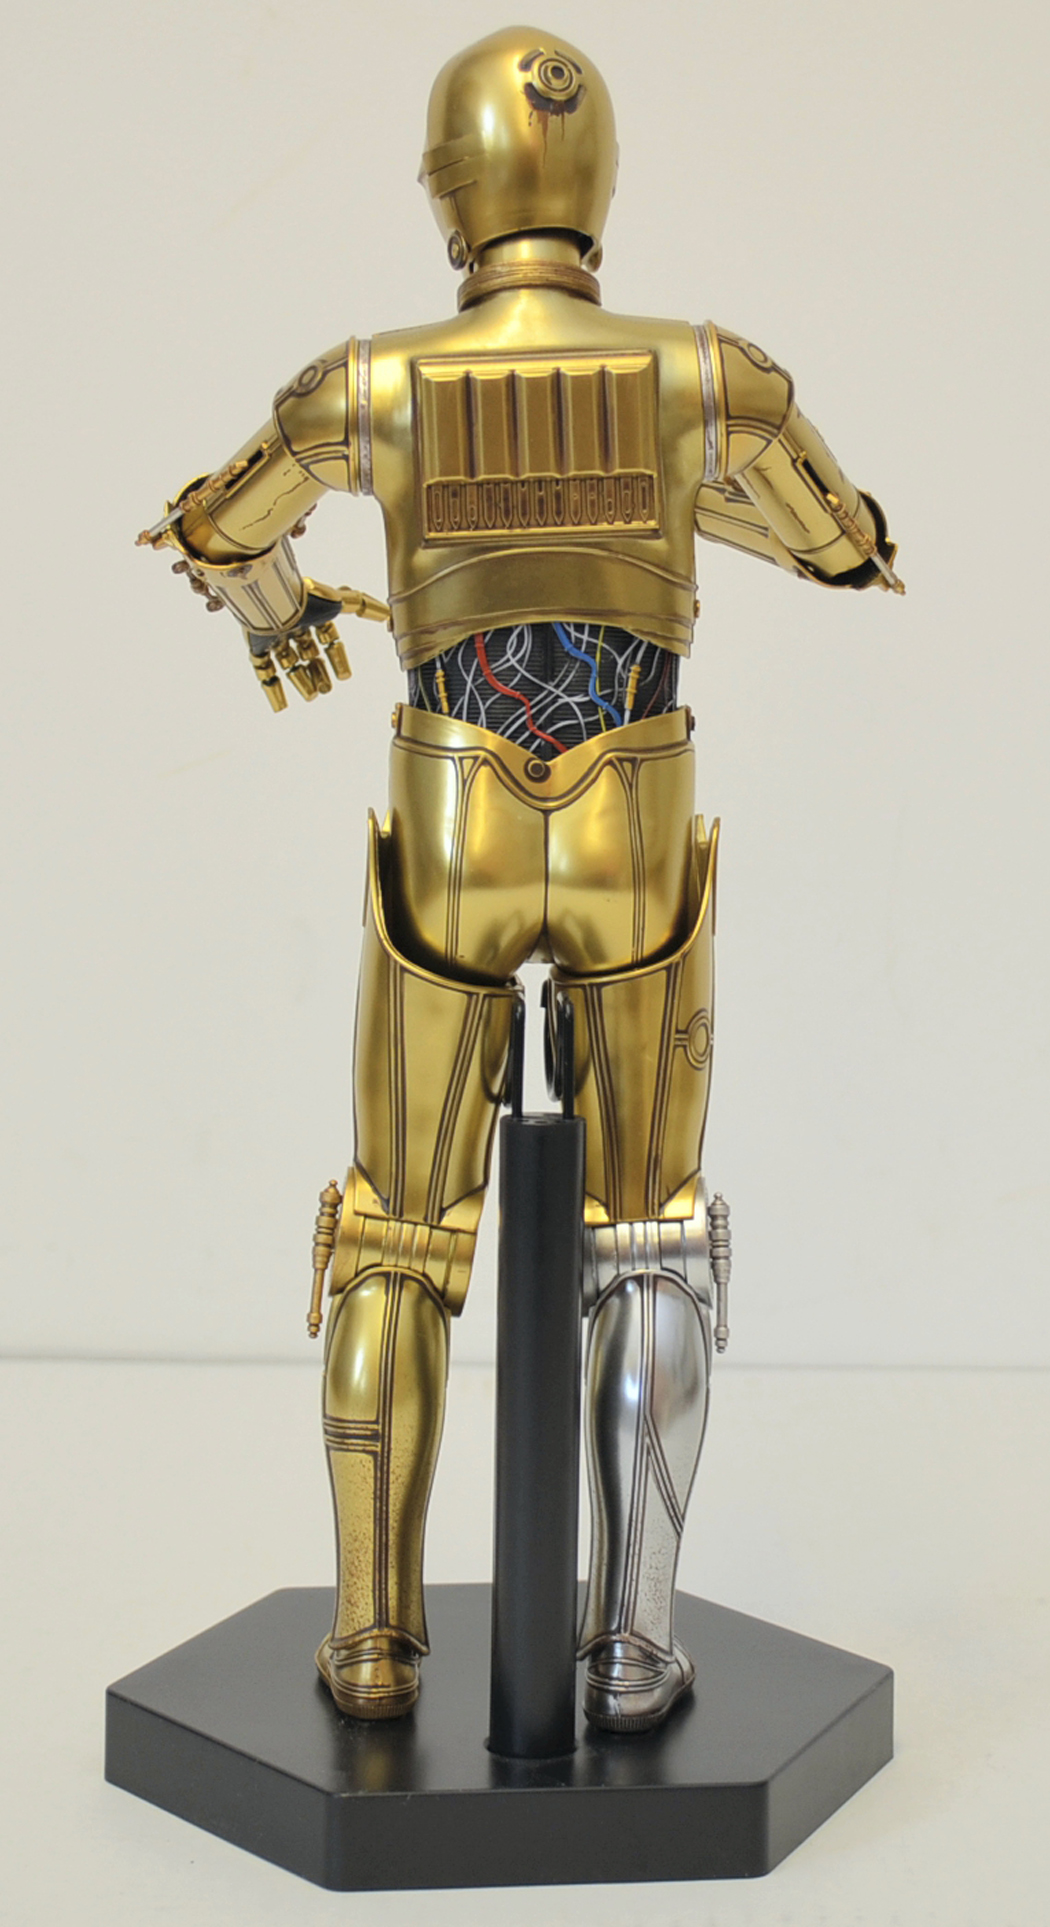 Sideshow Toy Star Wars C3po 1 6 Scale Figure